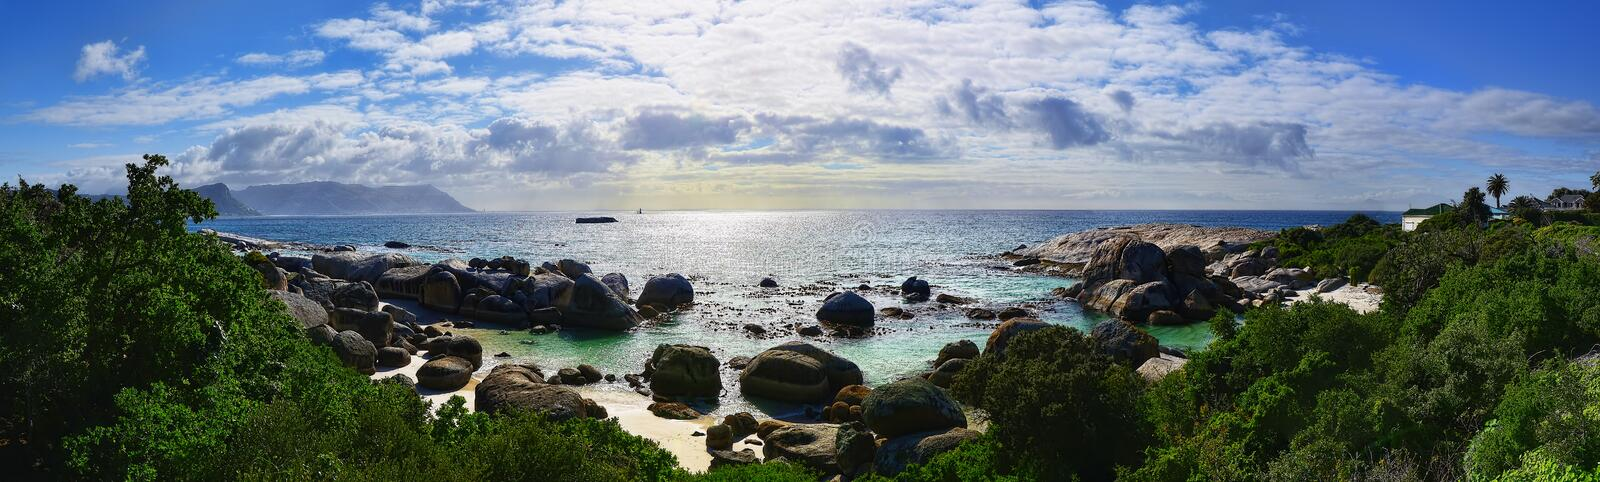 South Africa Boulders Beach royalty free stock image